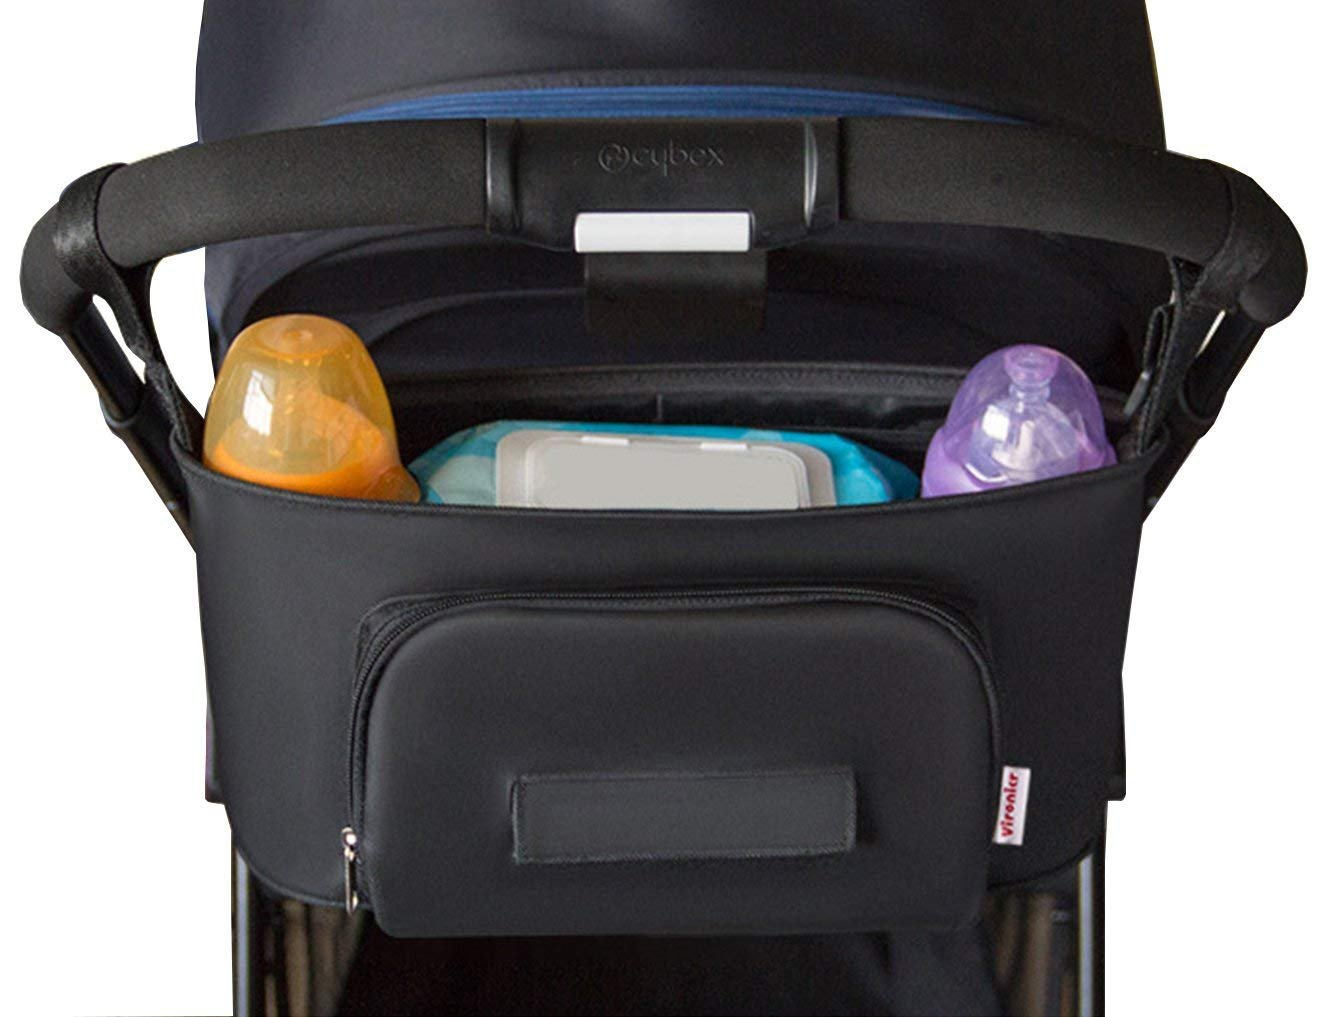 Baby Stroller Organizer with Tissue Pocket Diaper Bag with Insulated Cup Holders, Protable Stroller Accessories Bag Universal Fit -Baby Shower Gift Black Buddy4Baby